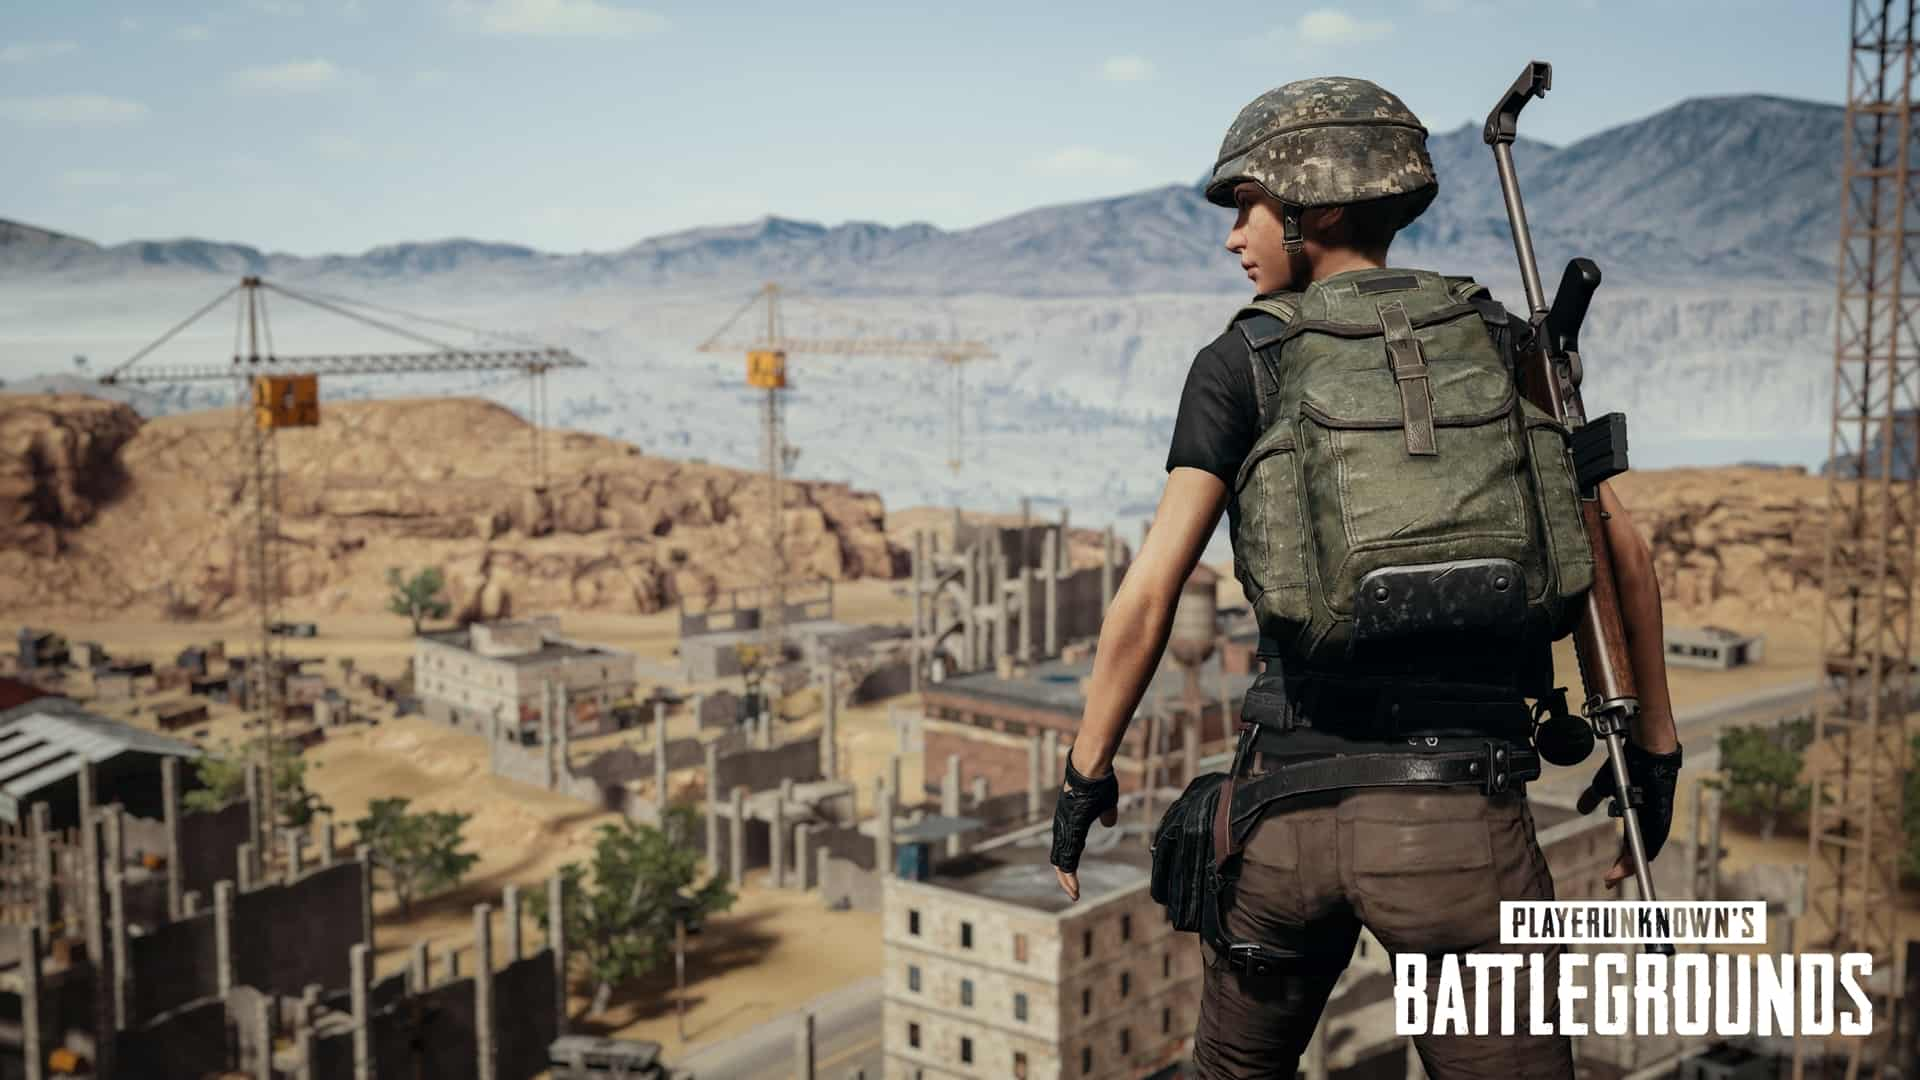 Pubg Wallpaper Black: PUBG Mobile Update 0.4.0 Patch Notes Details Huge